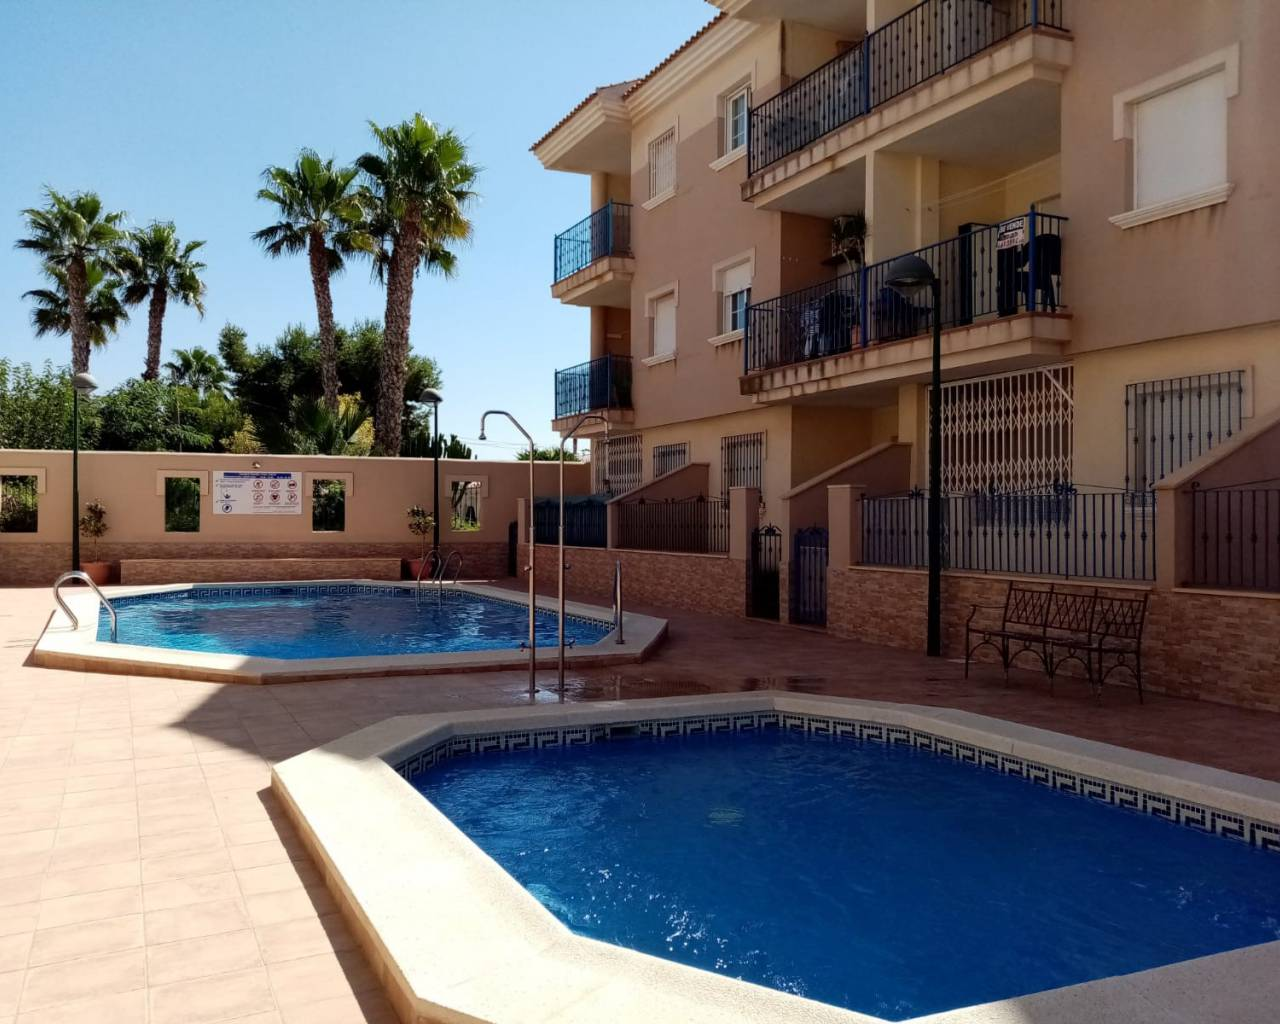 Sale - Apartment - Los Alcázares - Oasis